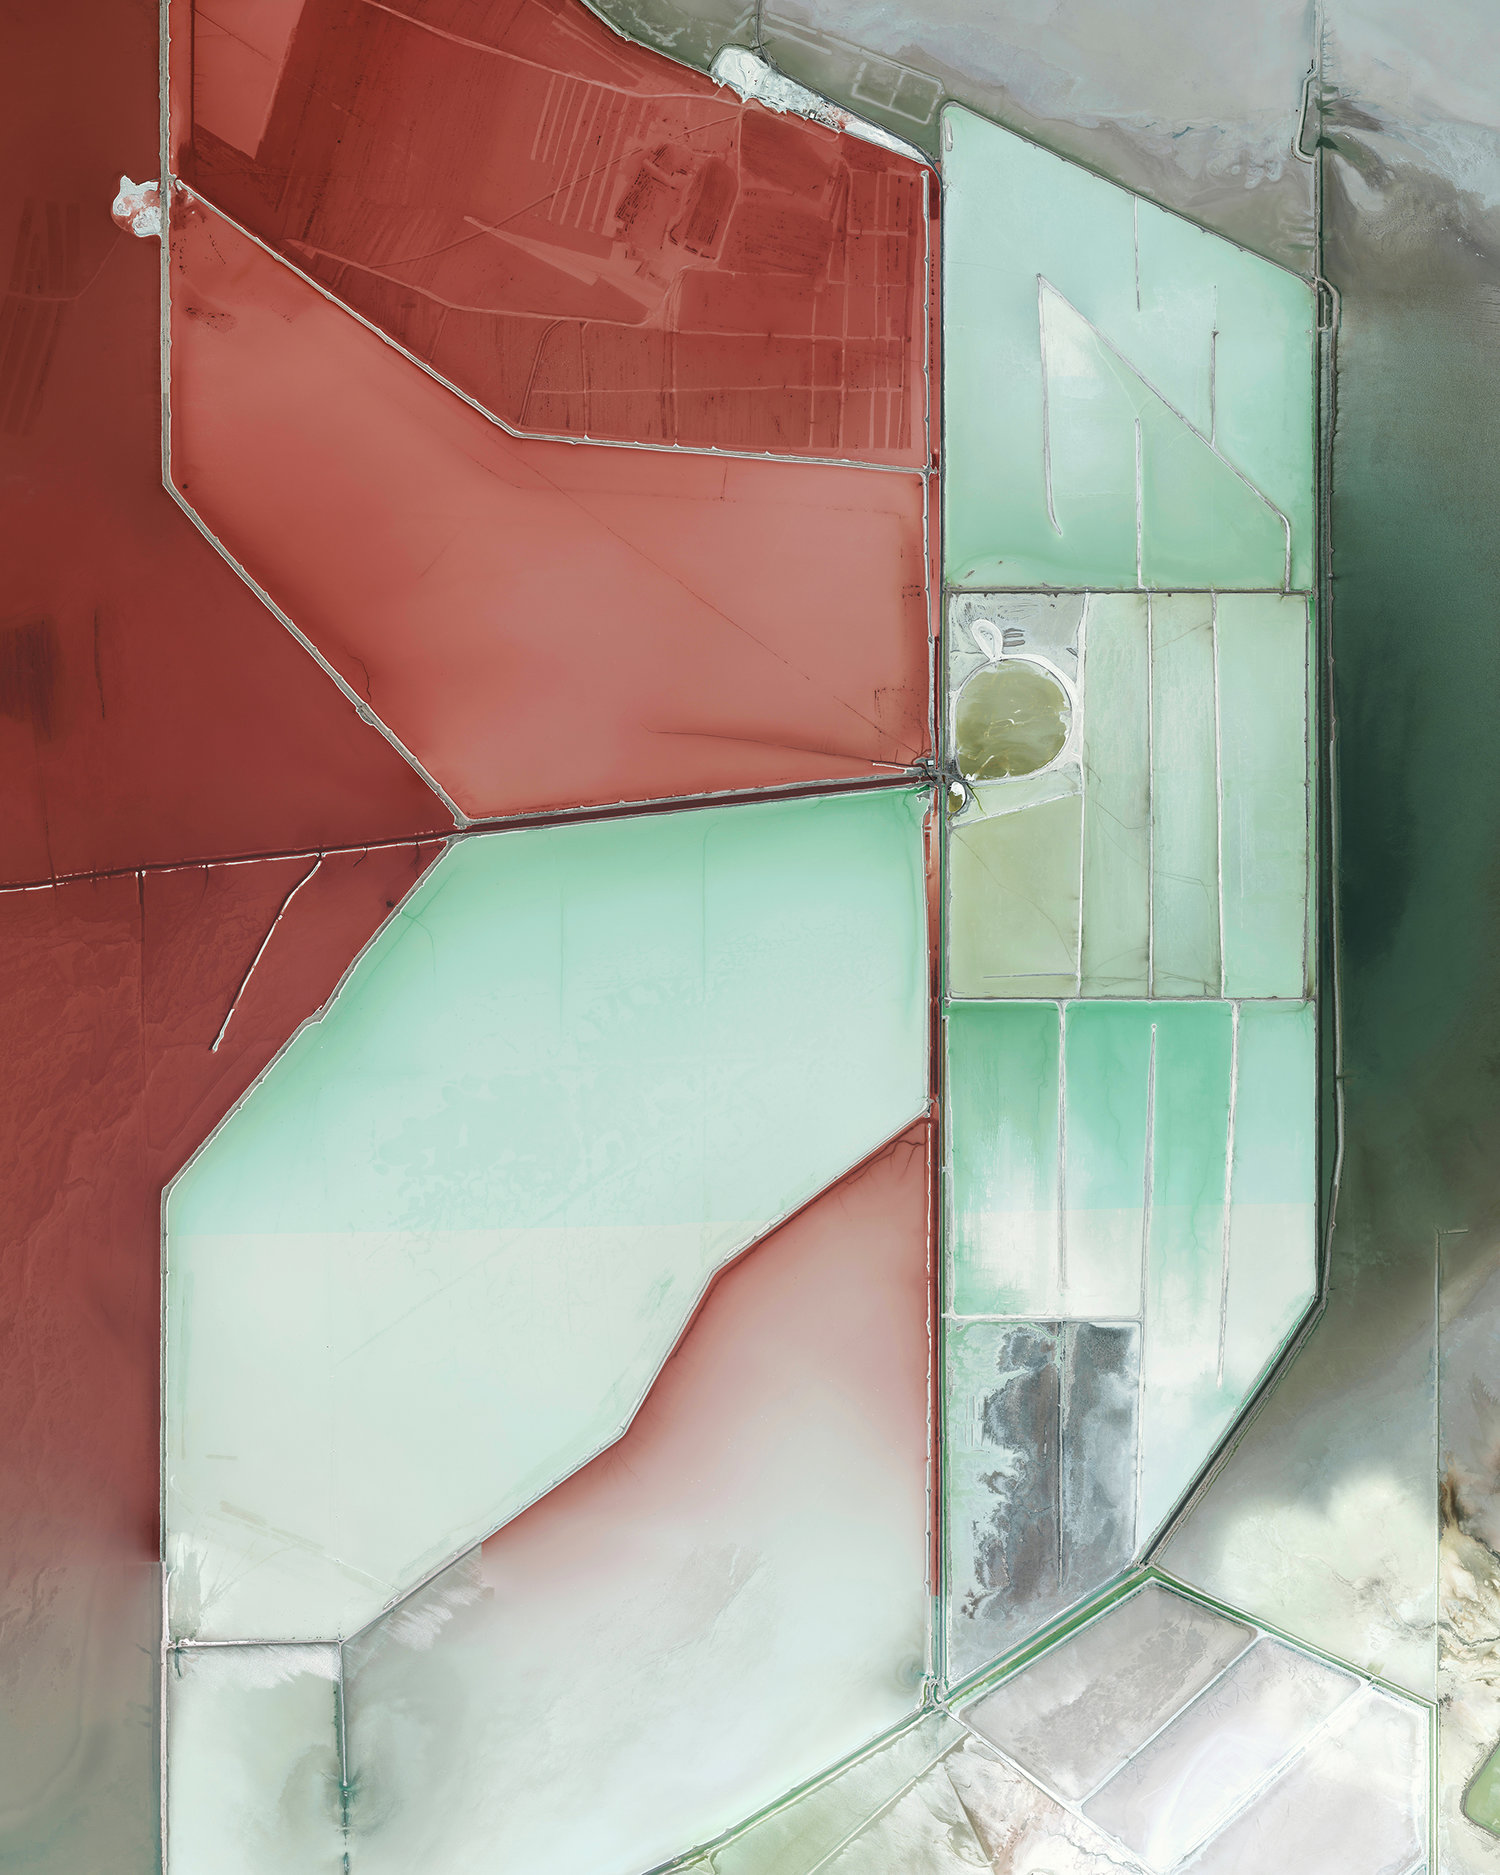 △ Evaporation ponds in Great Salt Lake, Utah